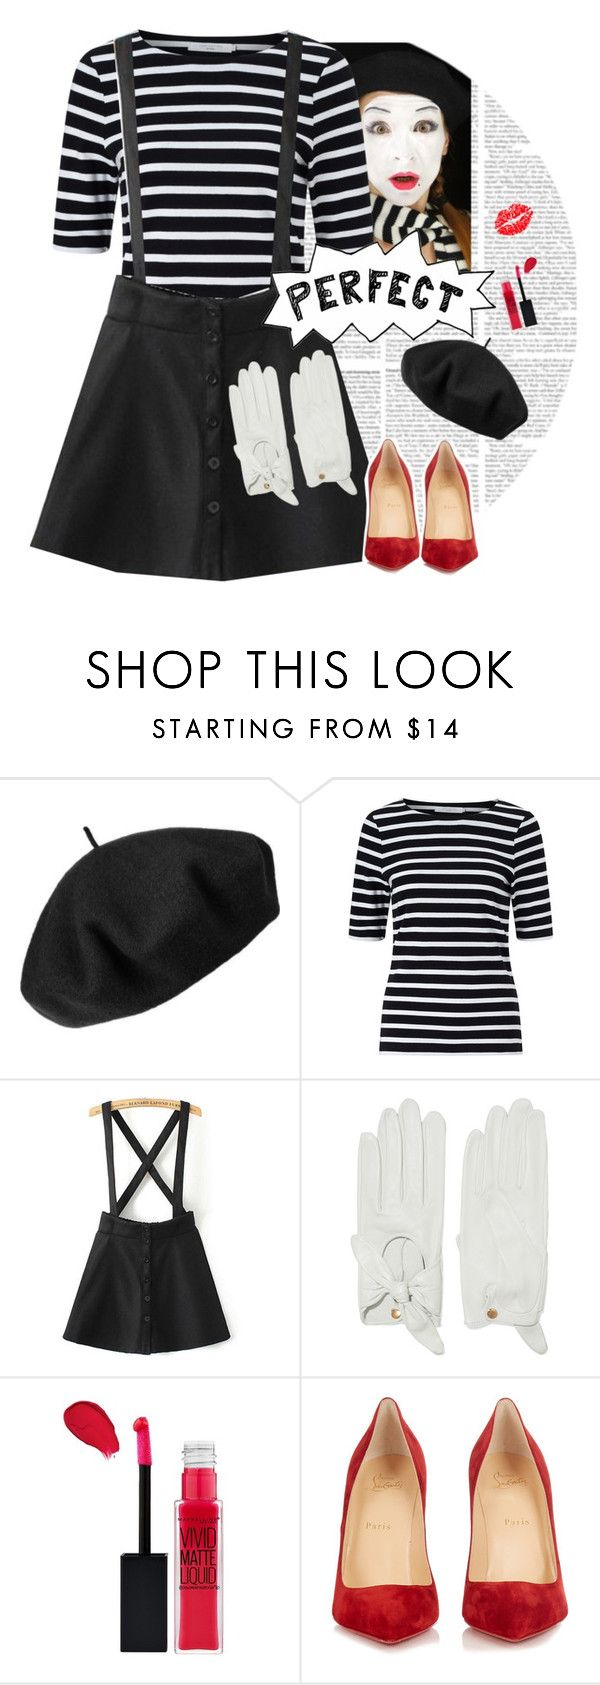 """""""Mime"""" by dory-speaks-whale ❤ liked on Polyvore featuring Betmar, John Lewis, Causse, Maybelline and Christian Louboutin"""